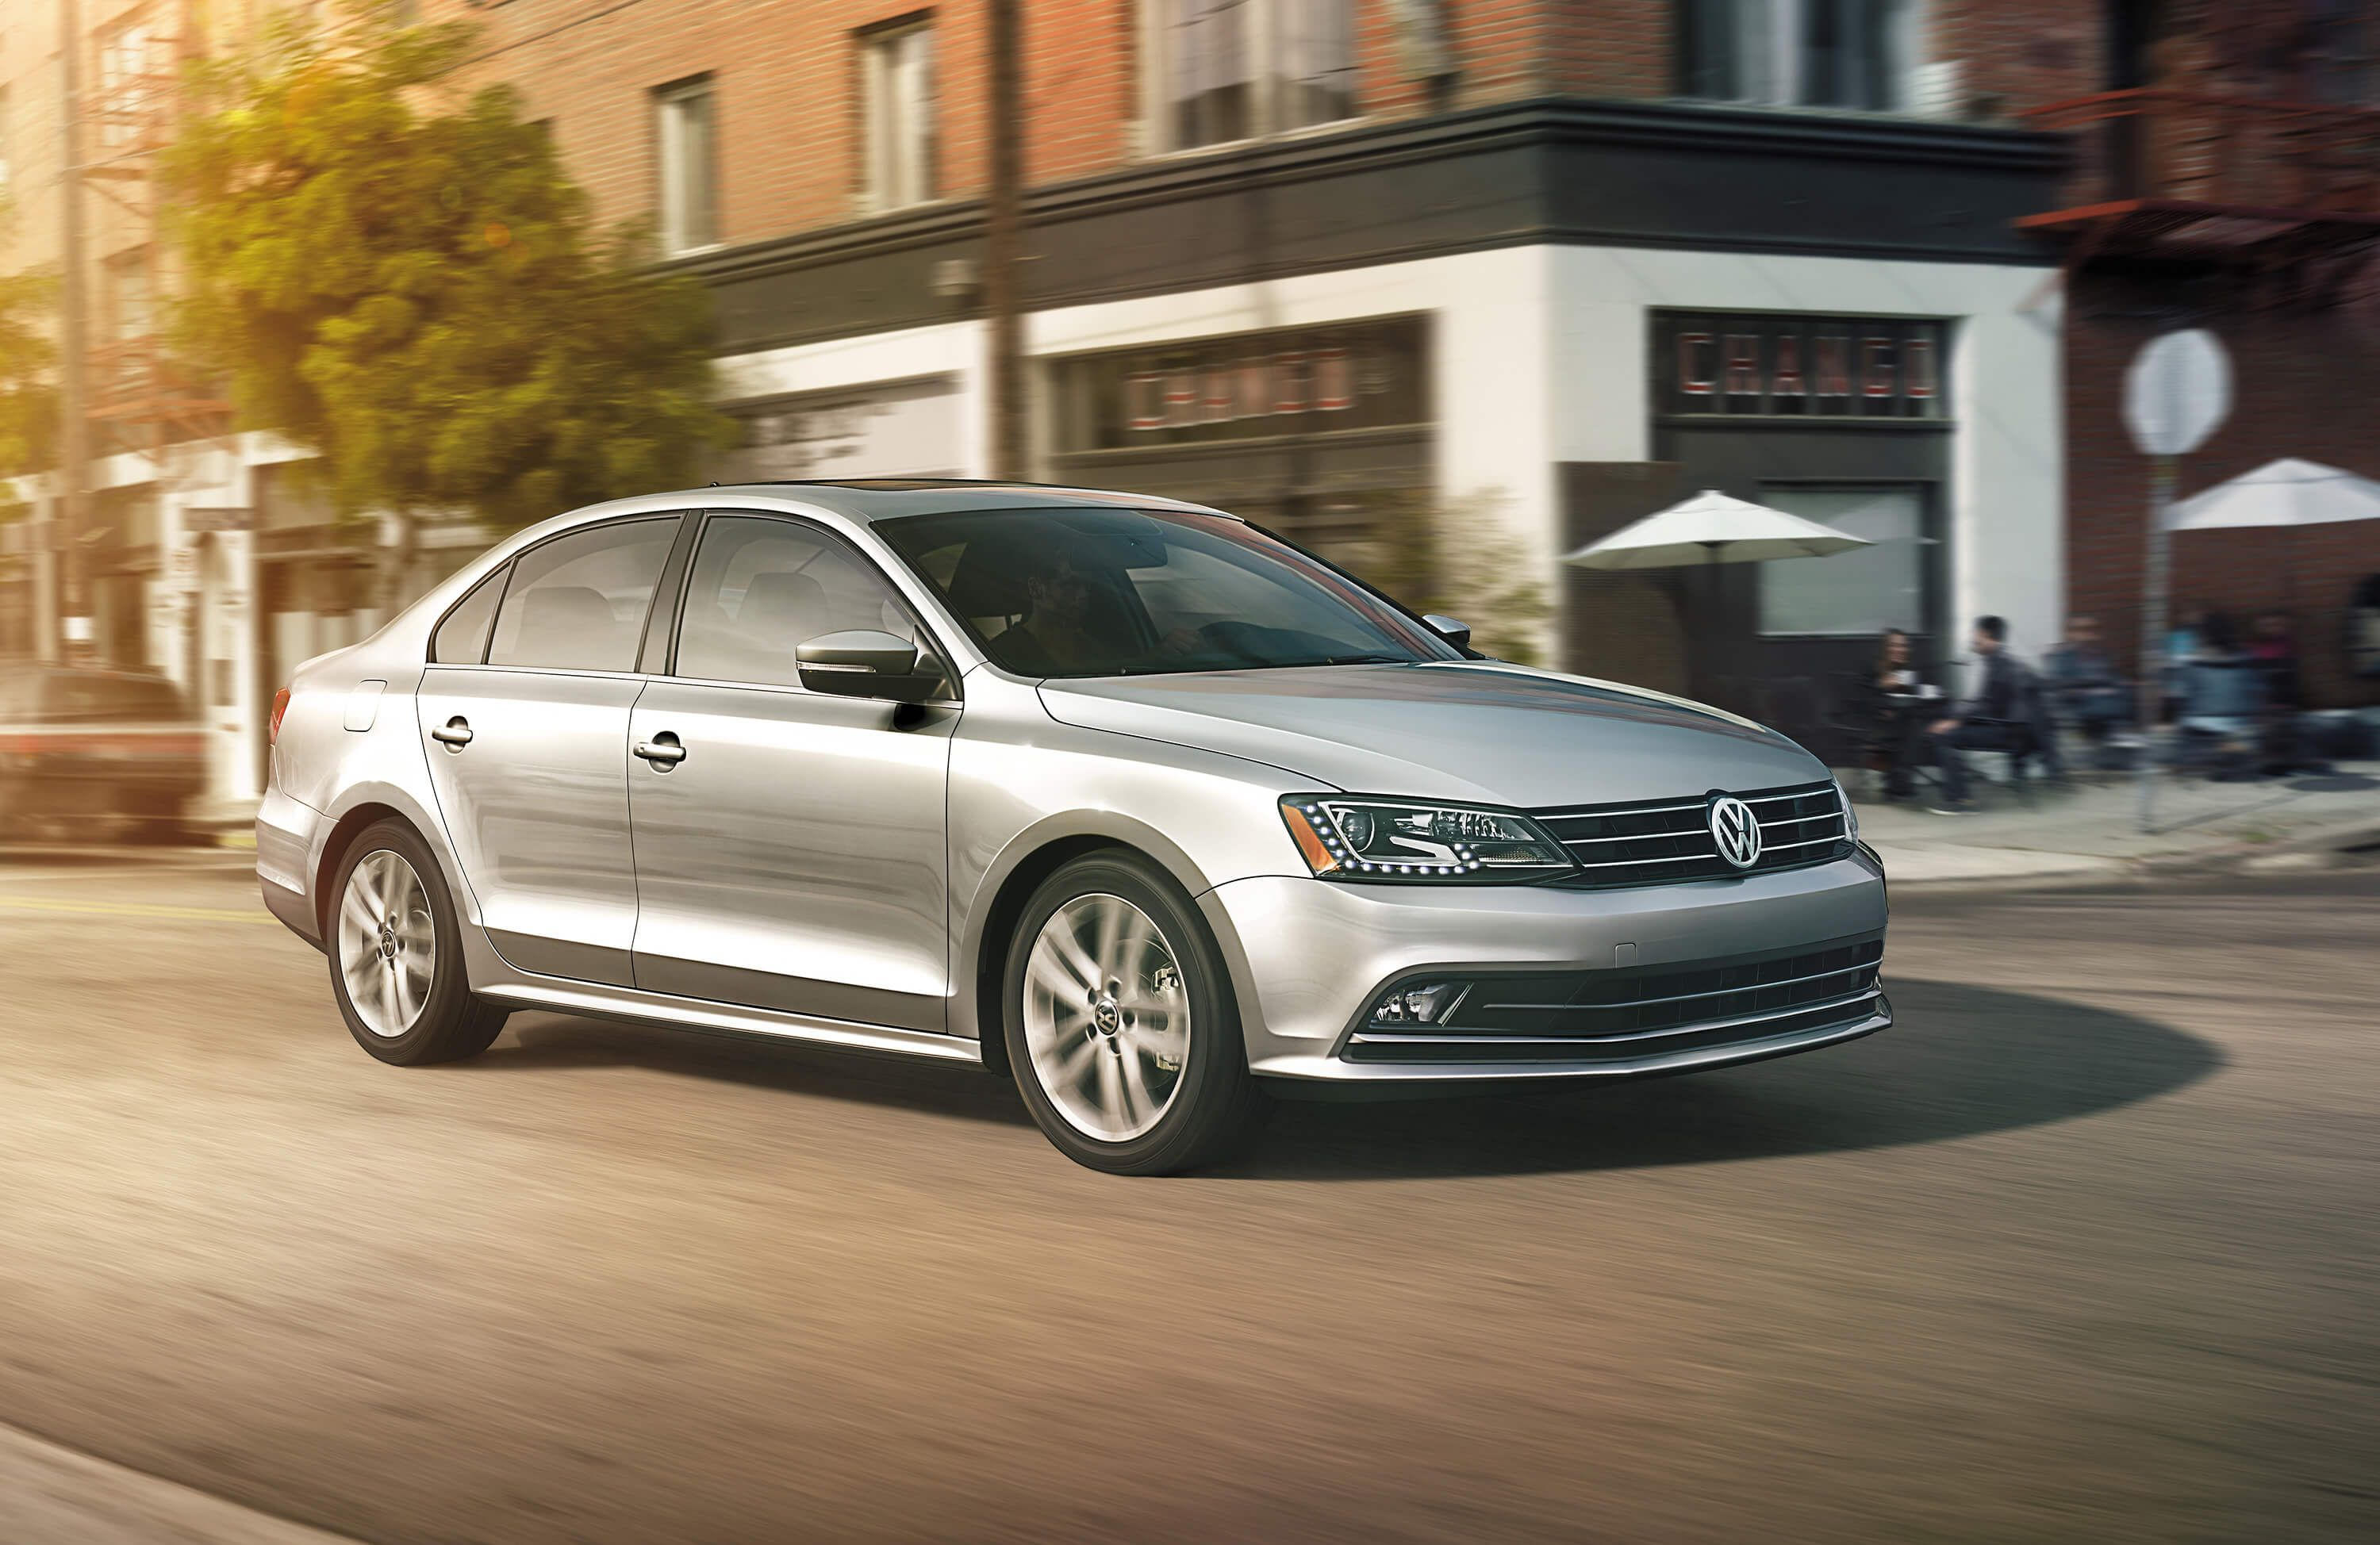 2015 volkswagen jetta owners manual - http://carmanualpdf/2015